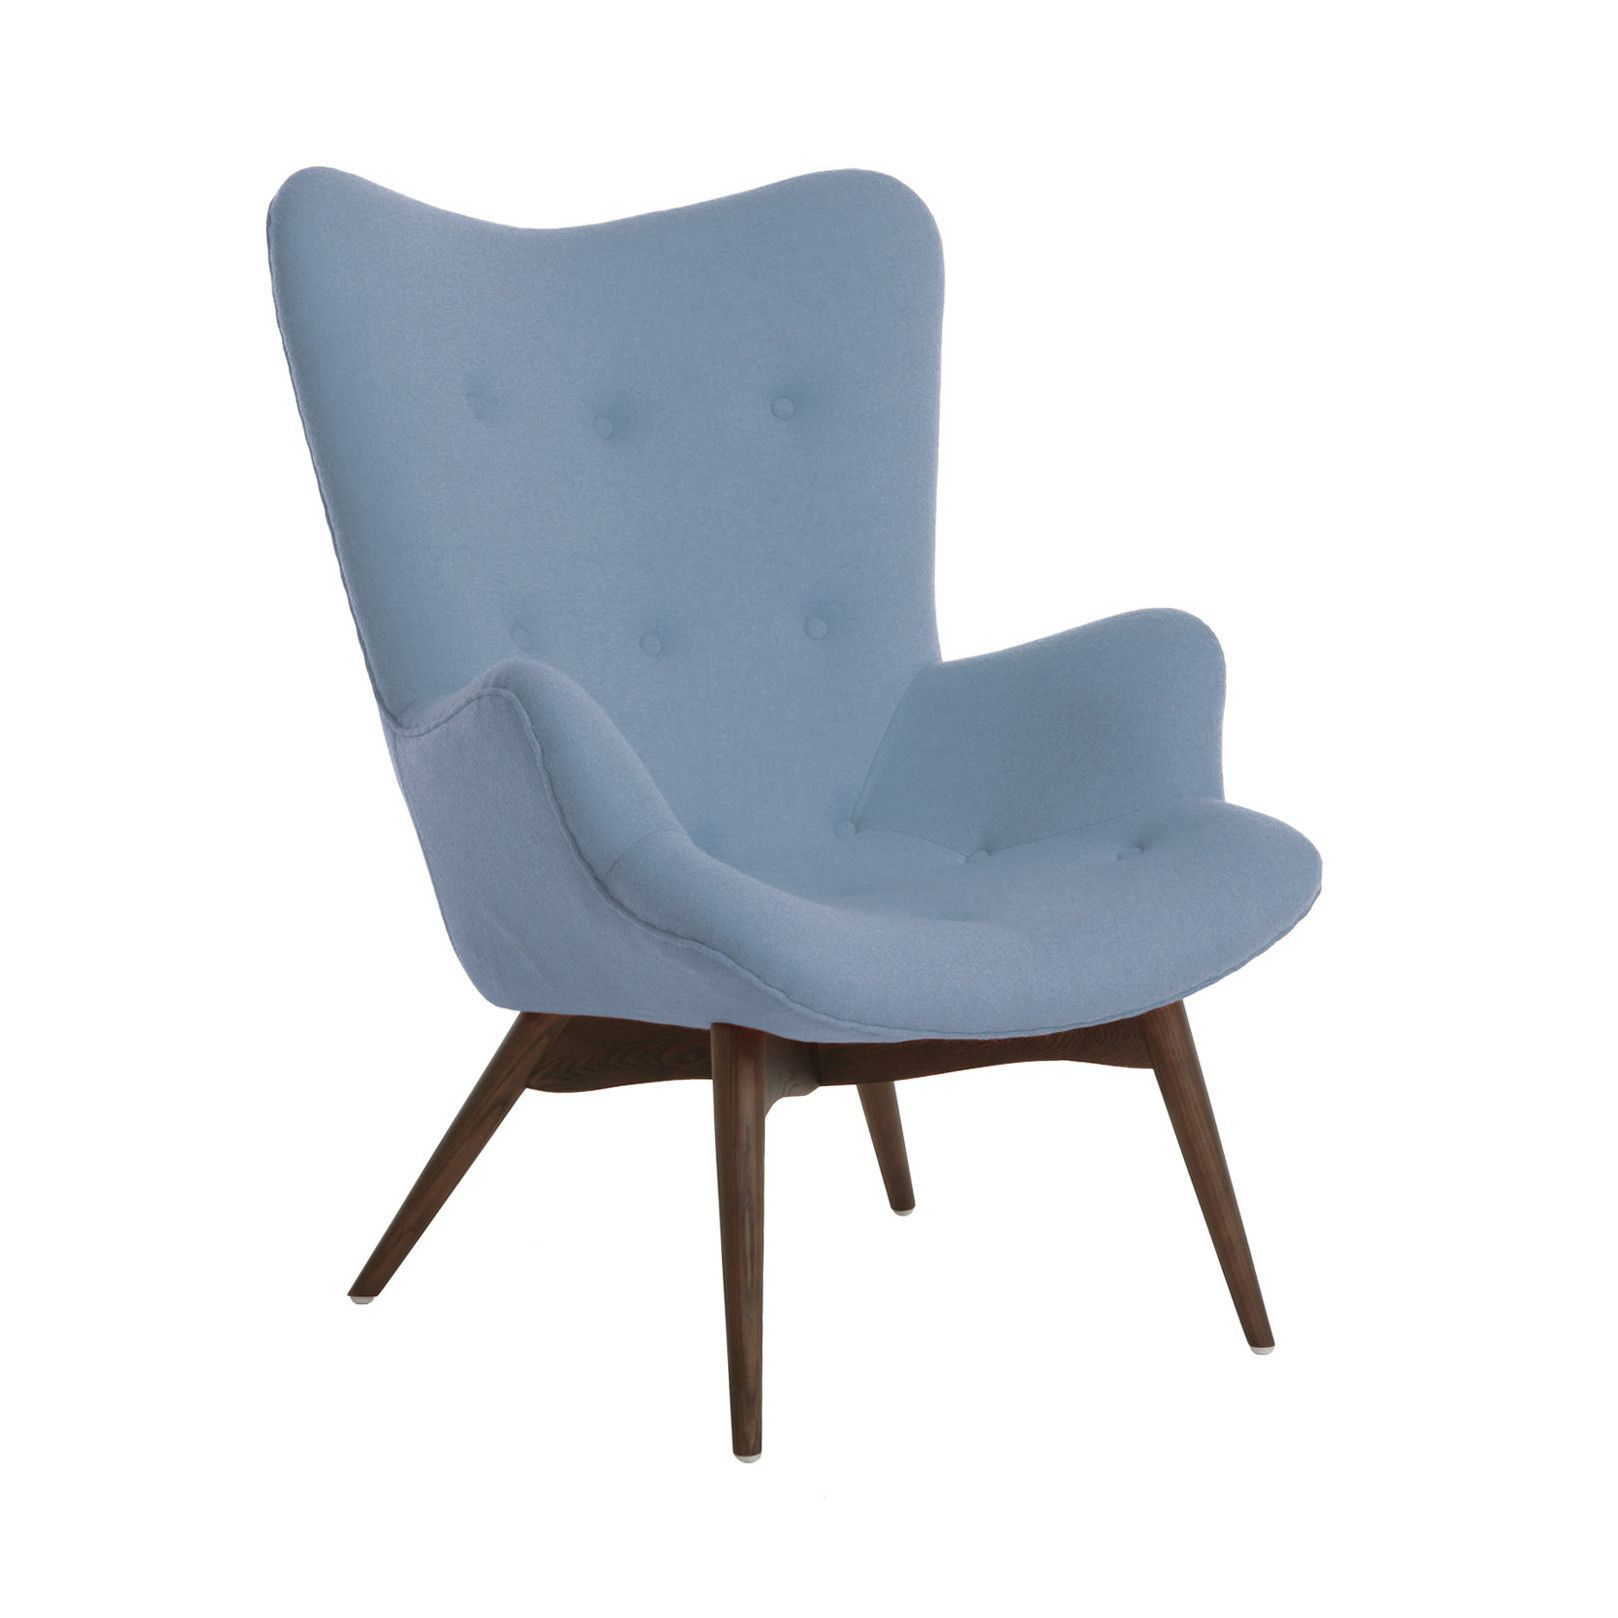 Aarhus Mid Century Soft Blue Lounge Chair